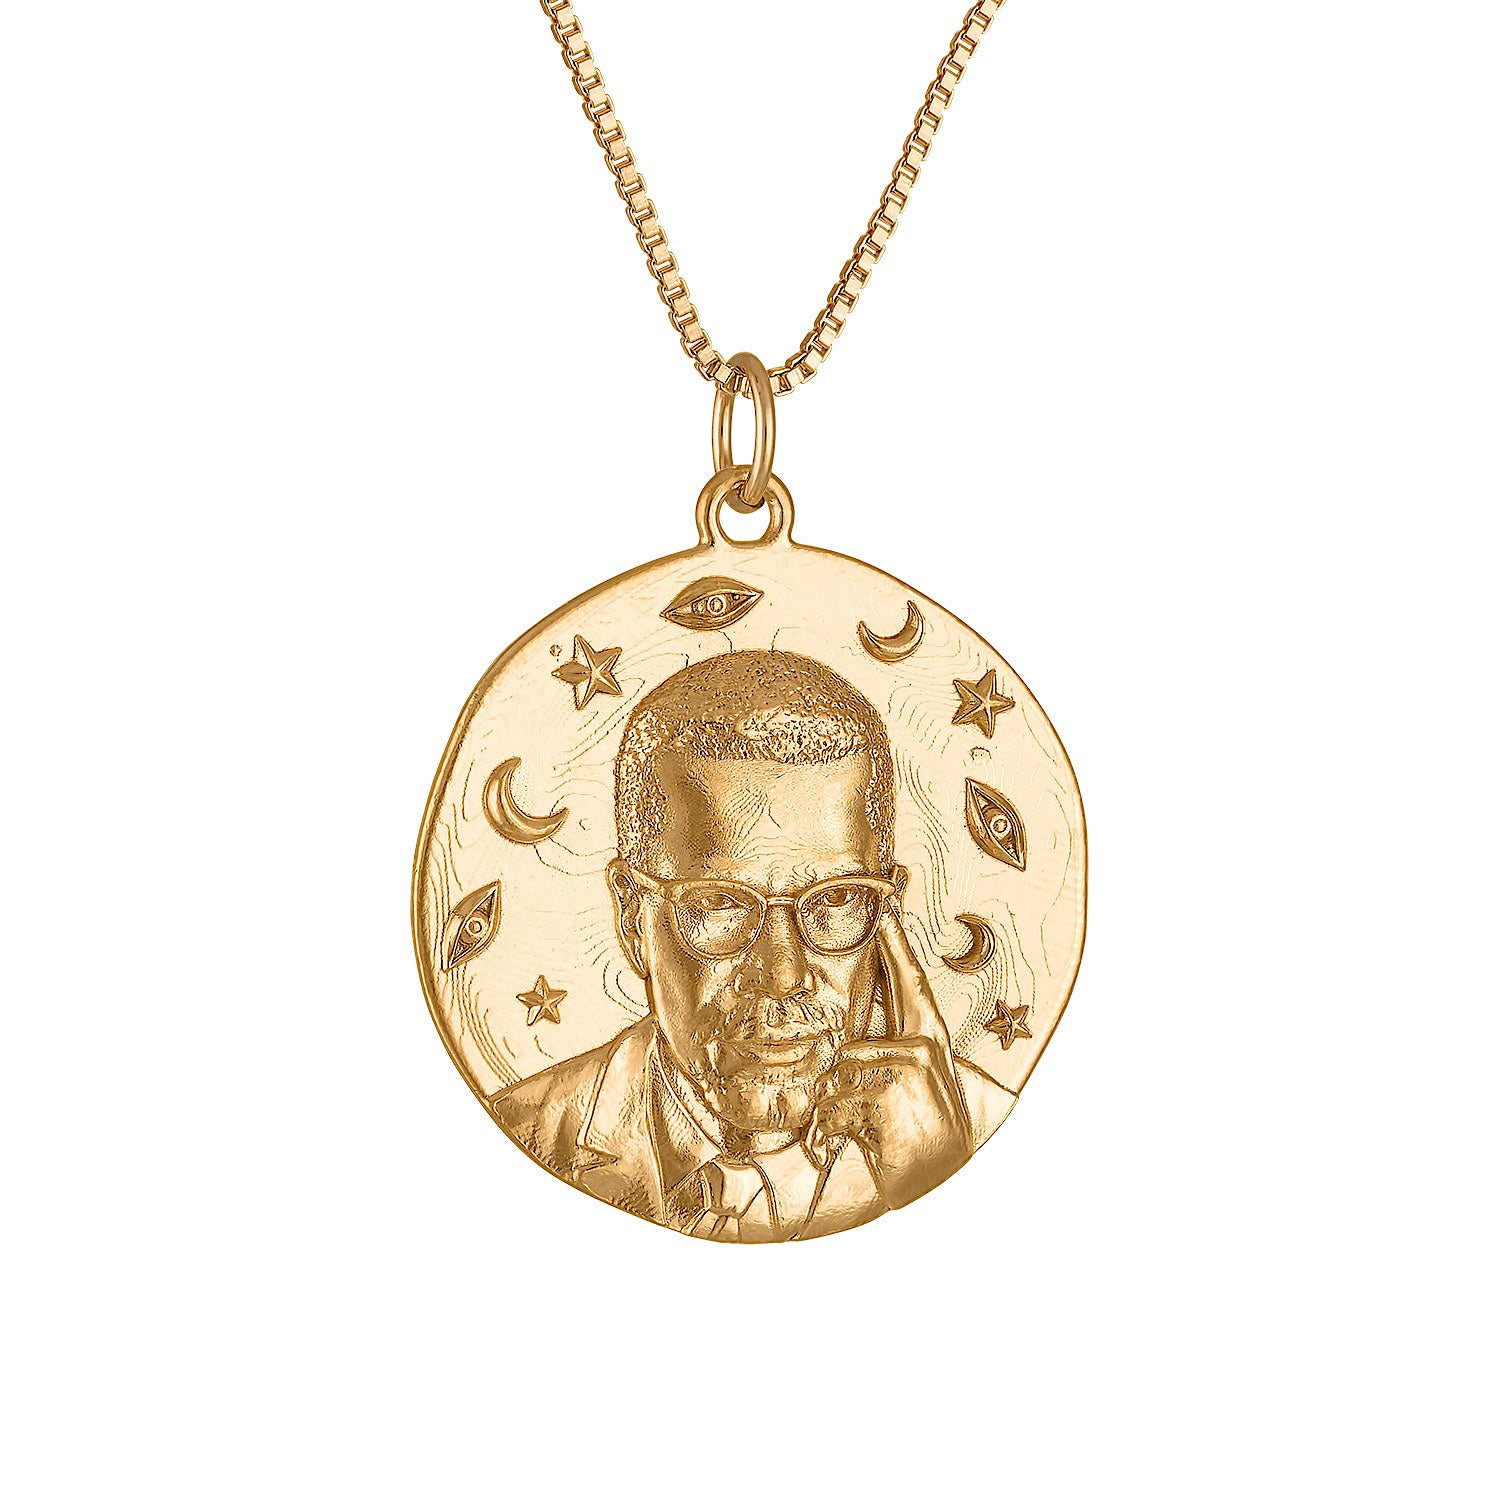 Malcolm X Small Round Medallion